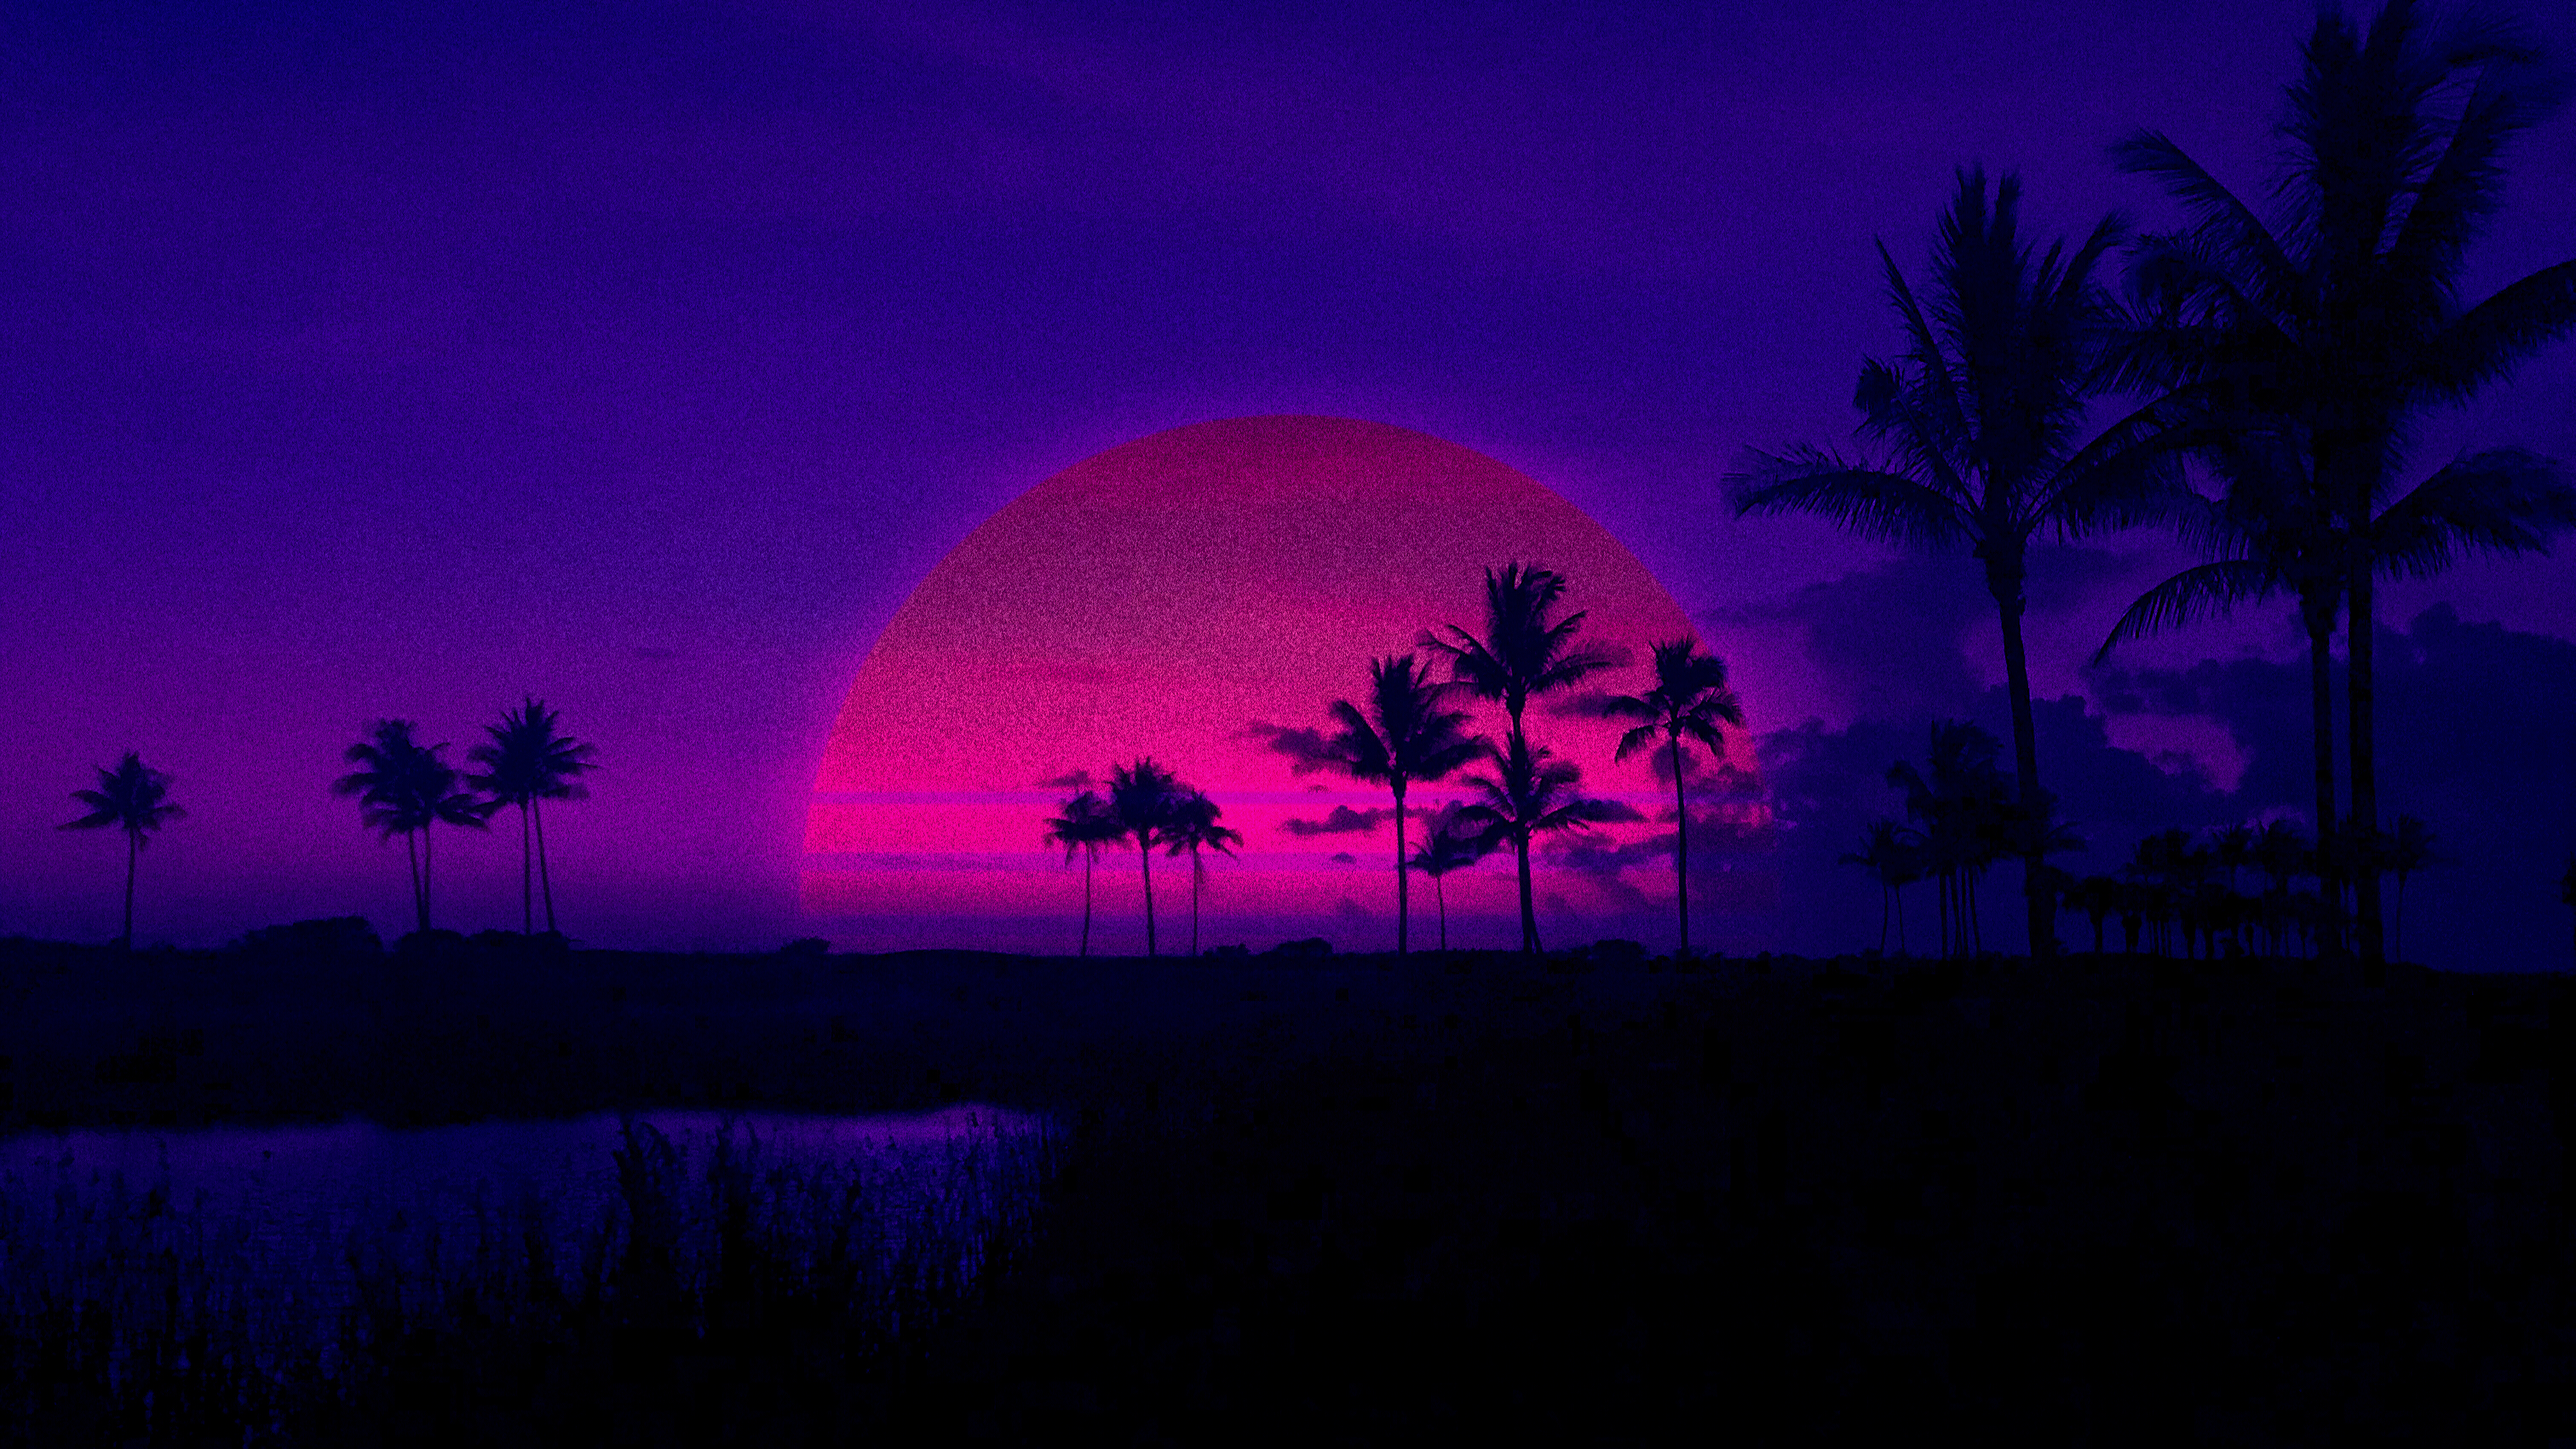 Aesthetic Sunset Pc Wallpapers Wallpaper Cave